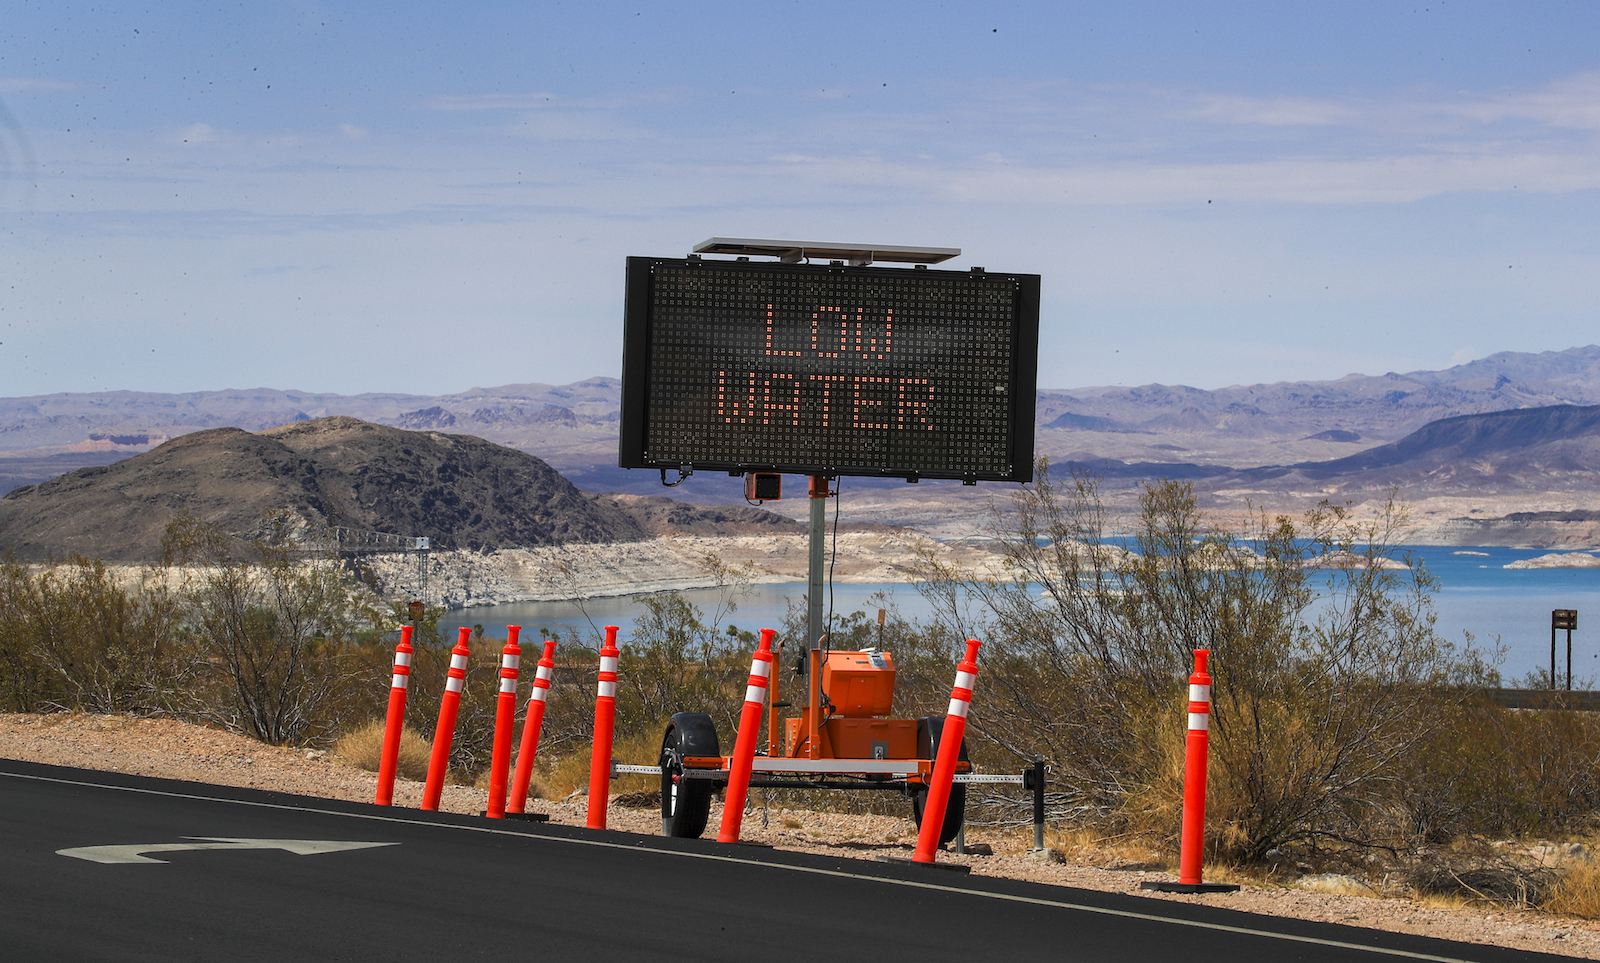 a large light-up sign near the side of a highway says low levels. The sign is surrounded by orange cones and water is visible in the background